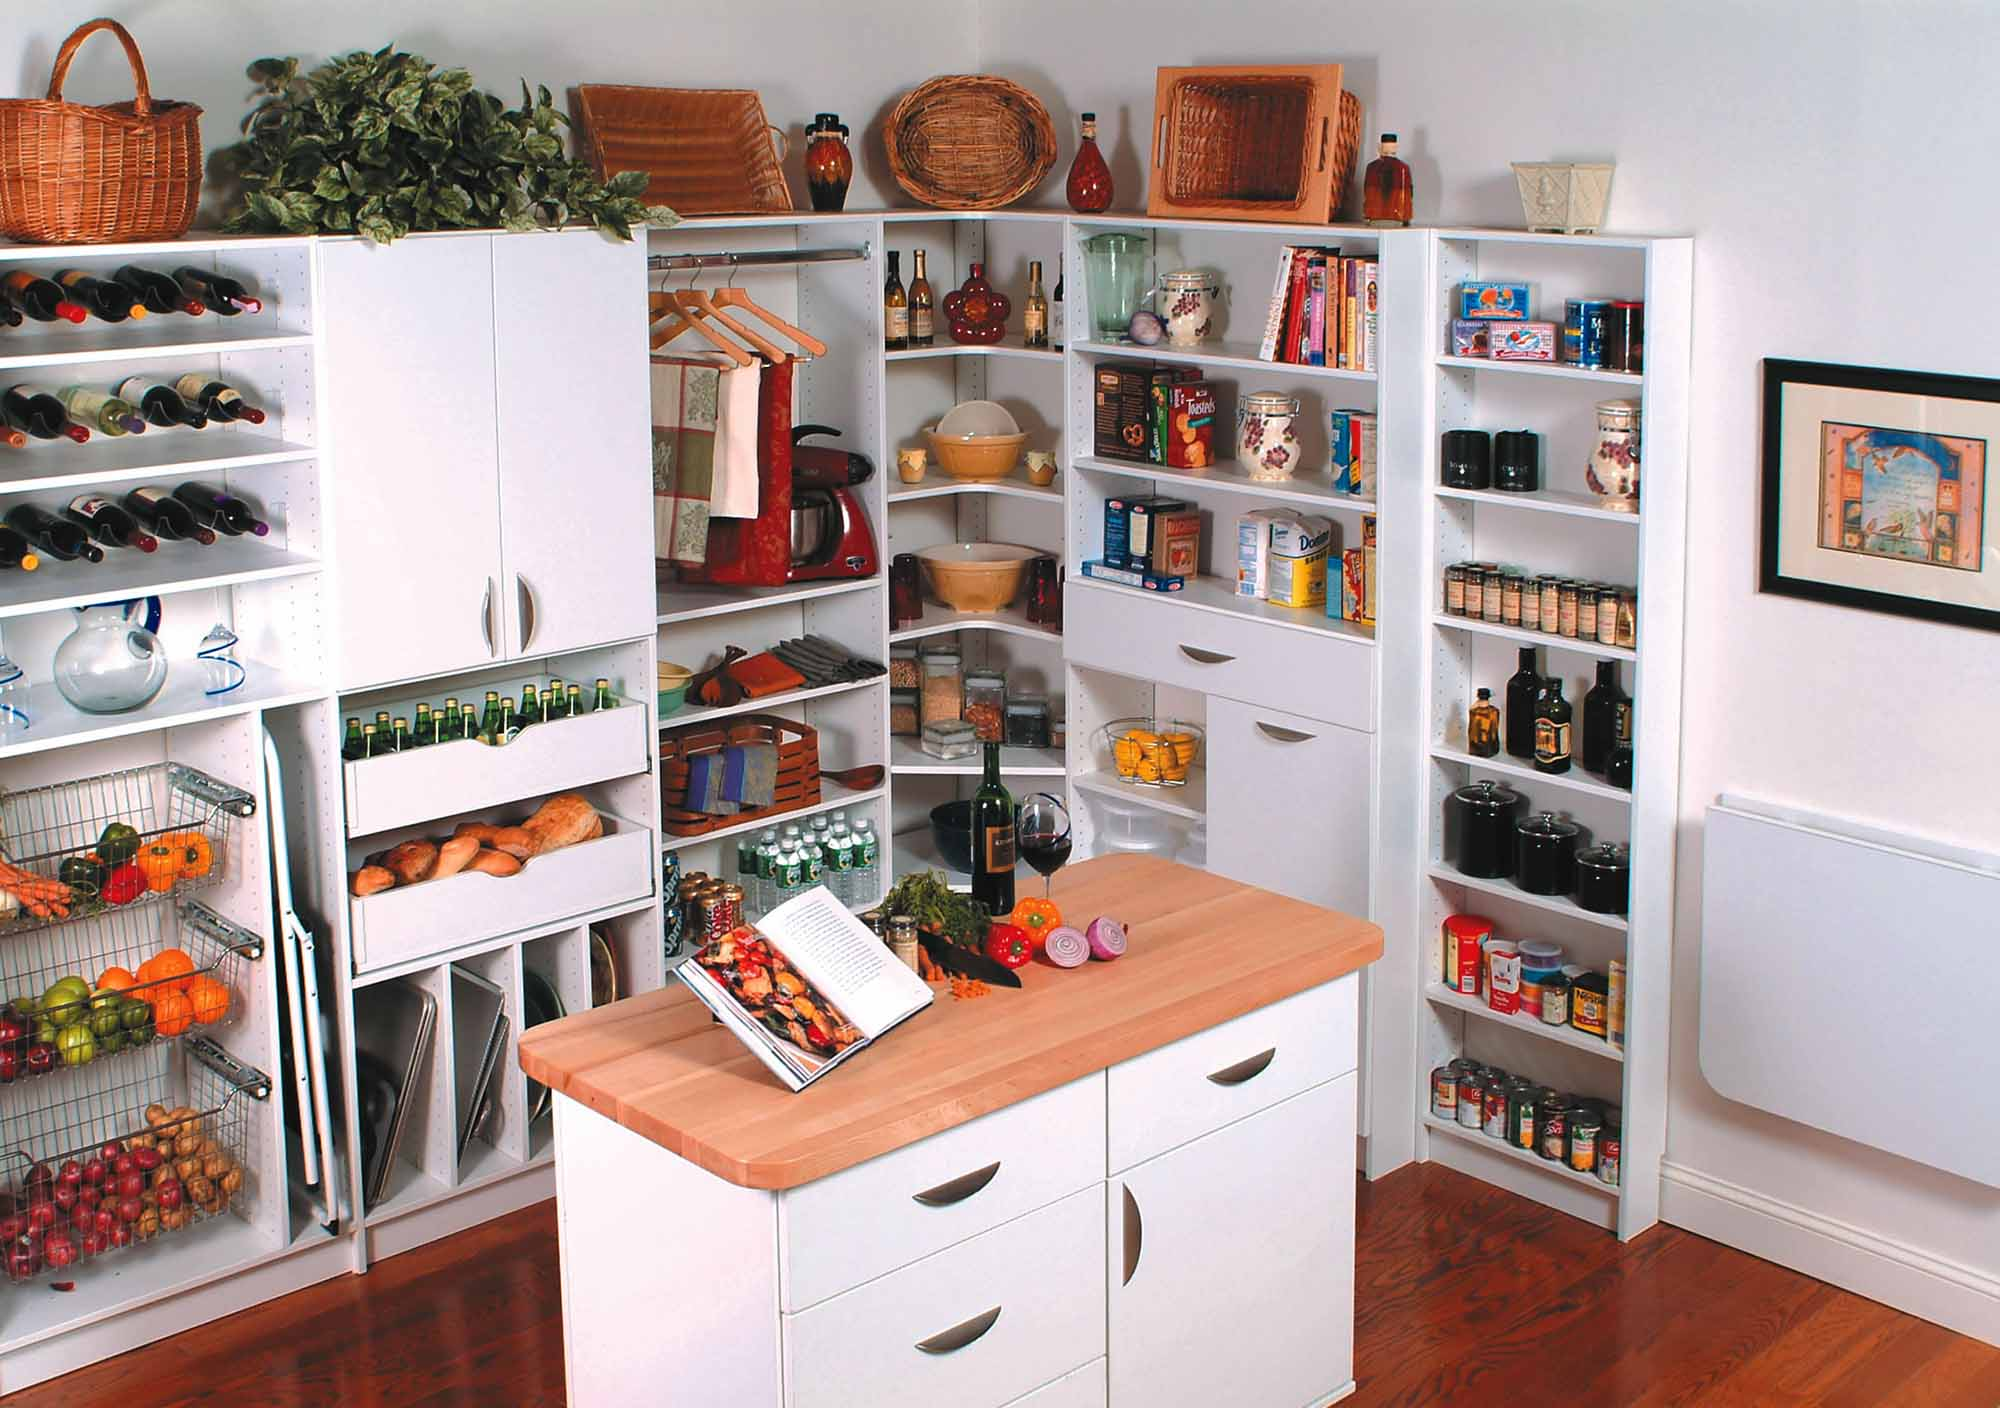 The Top 3 Benefits of Keeping Your Pantry Organized